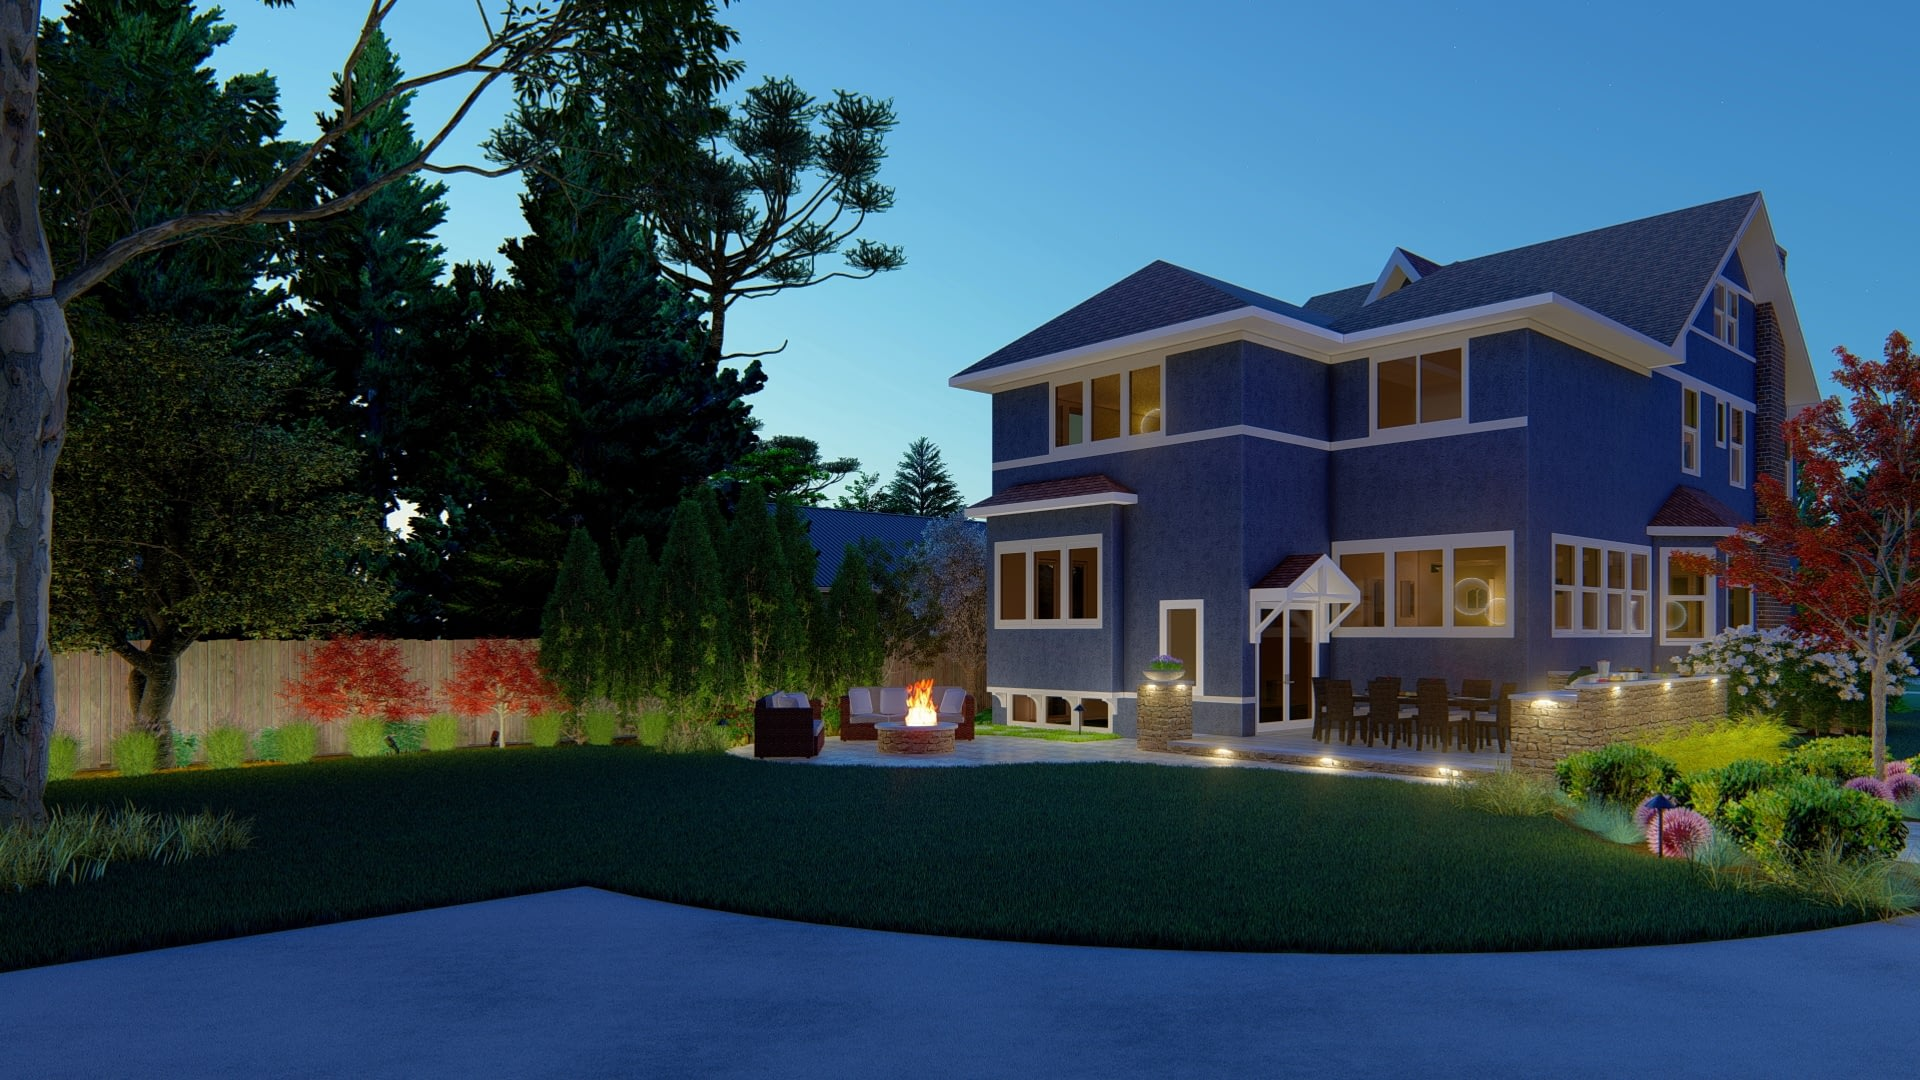 Rear Yard Outdoor Lighting and Design